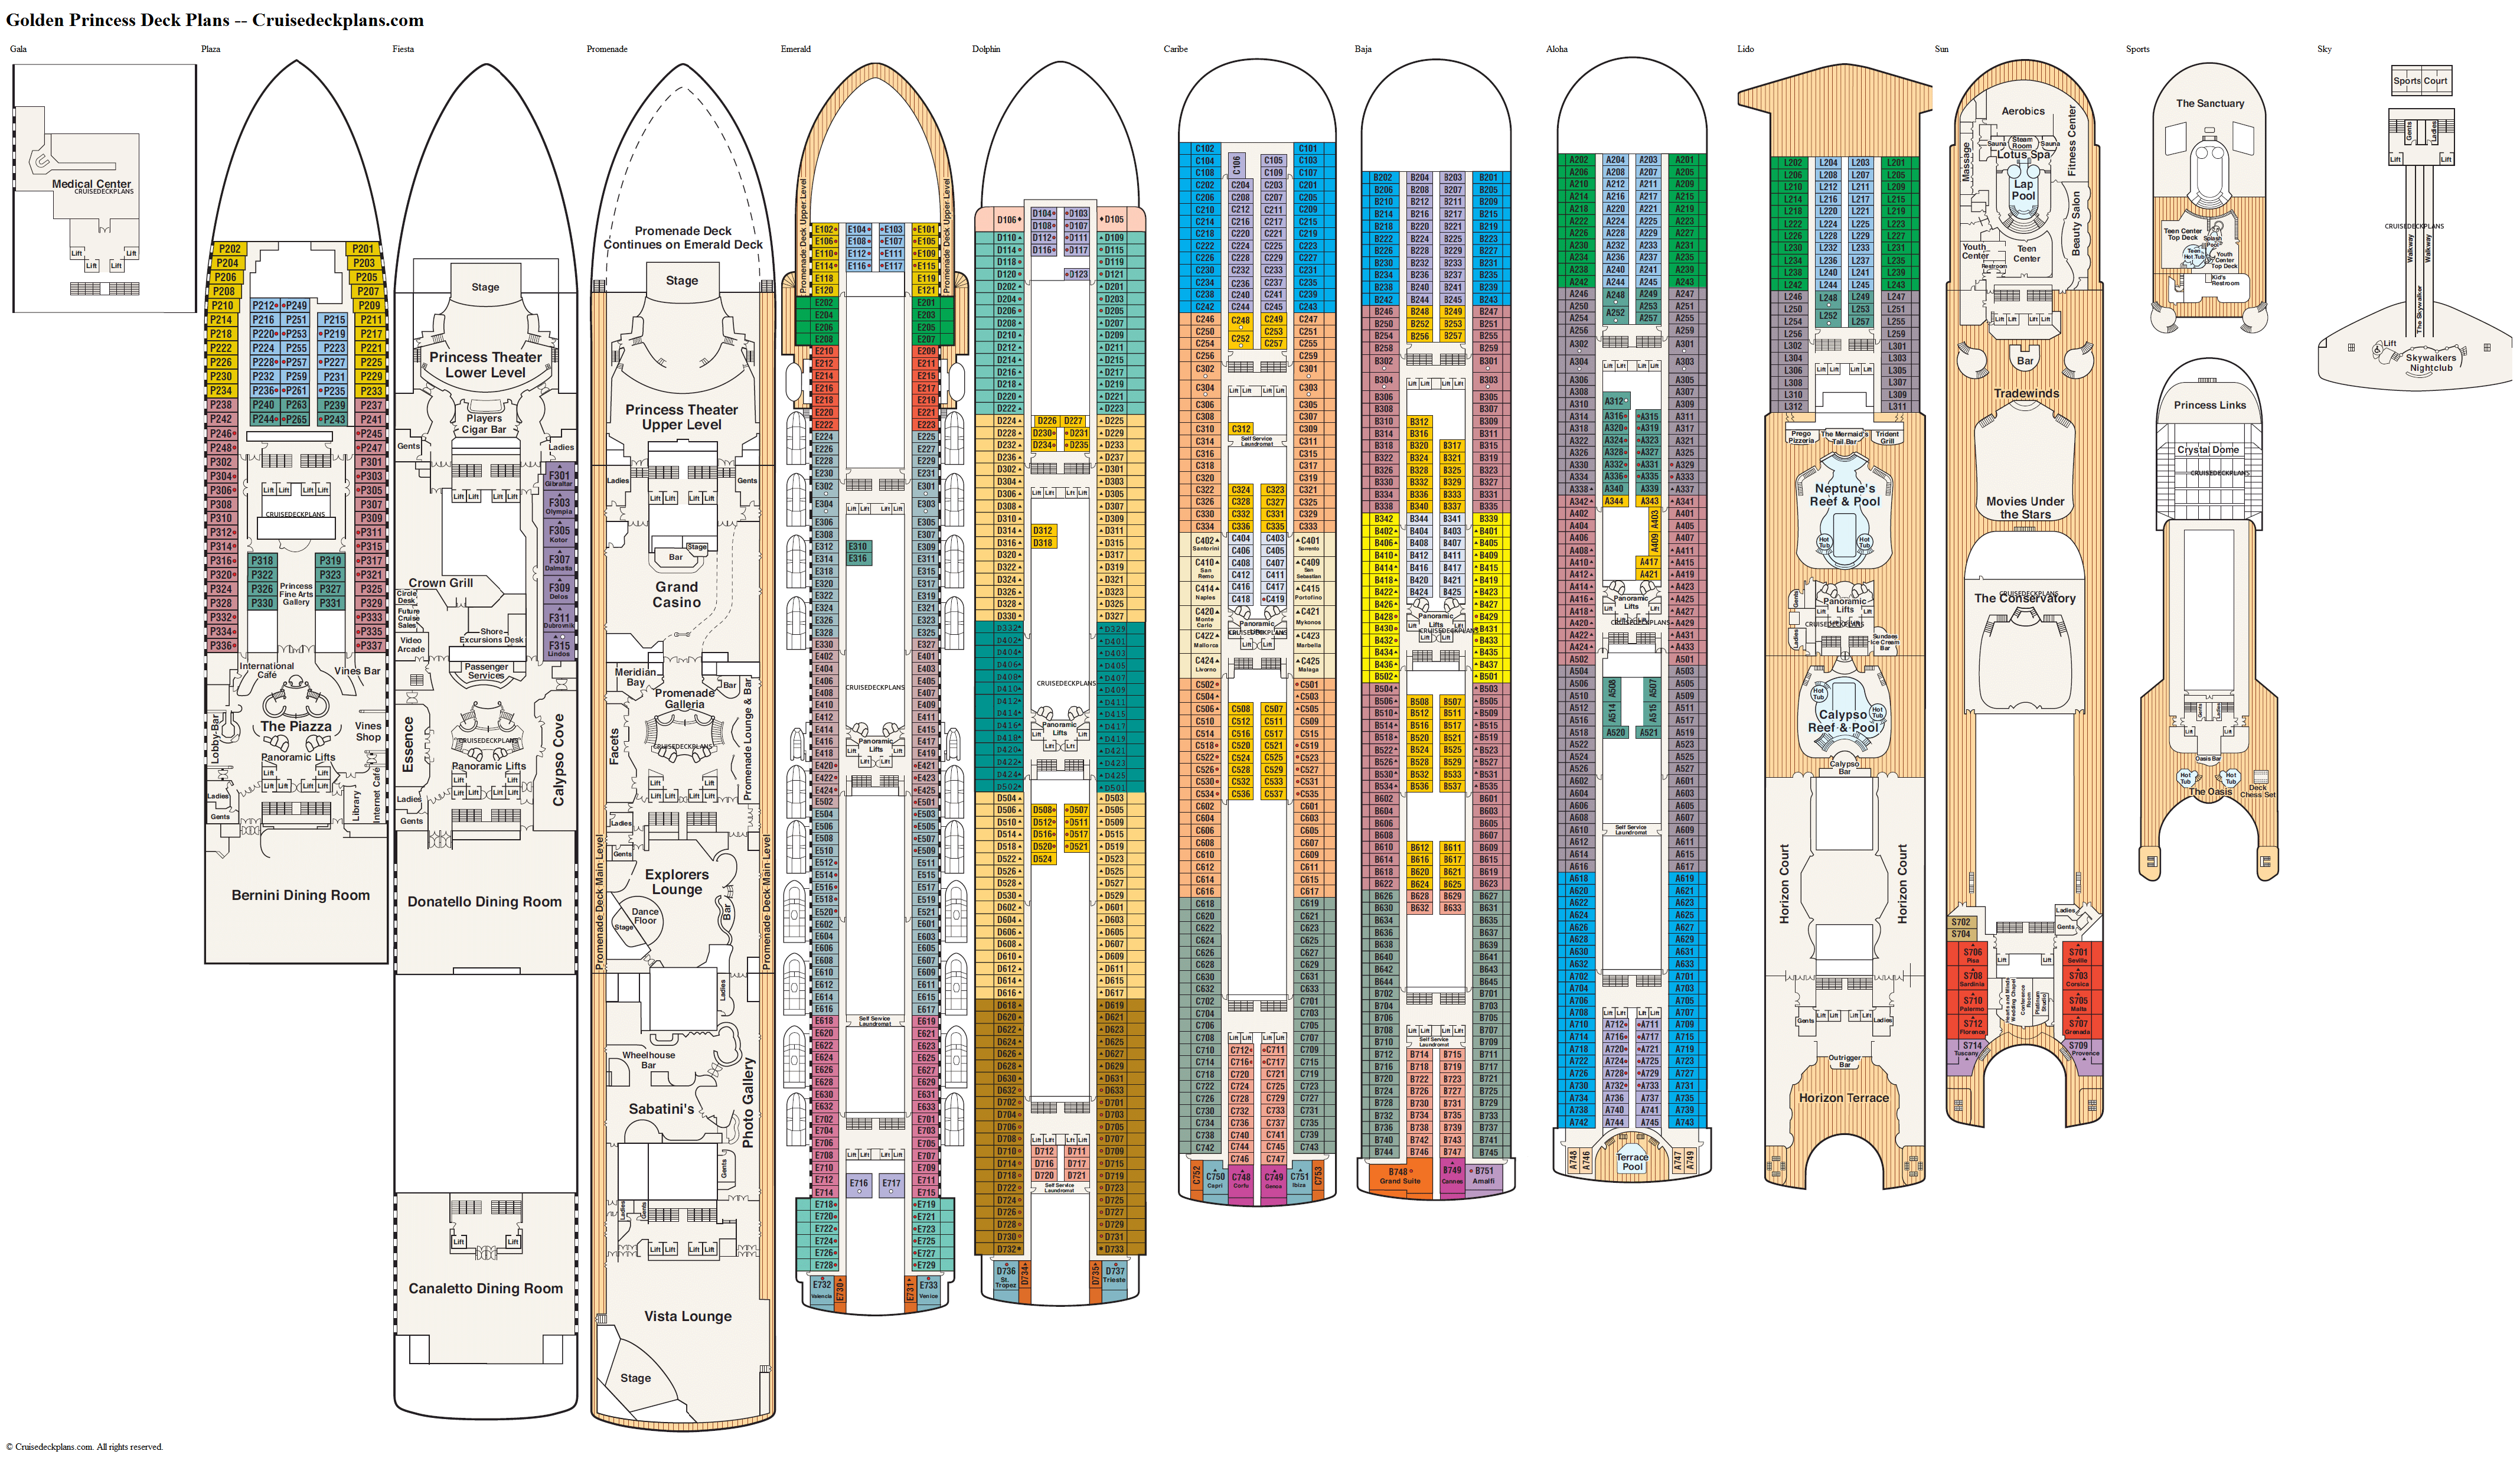 Golden Princess deck plans image